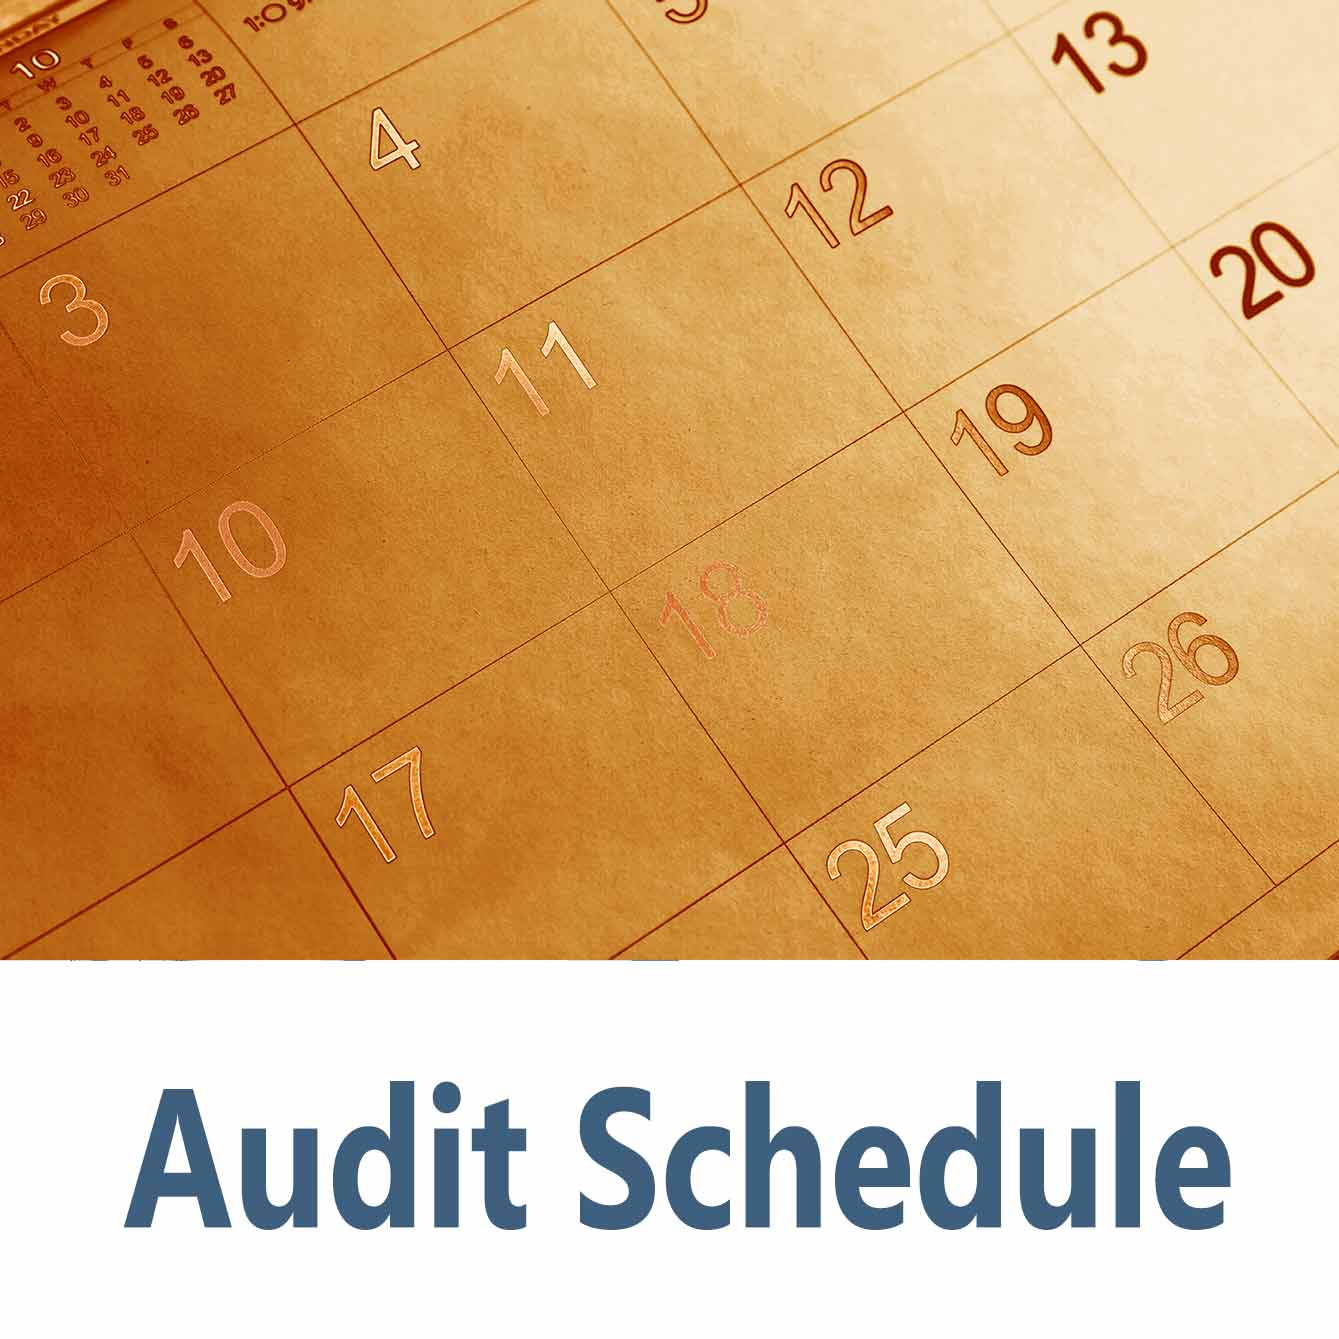 Audit schedule